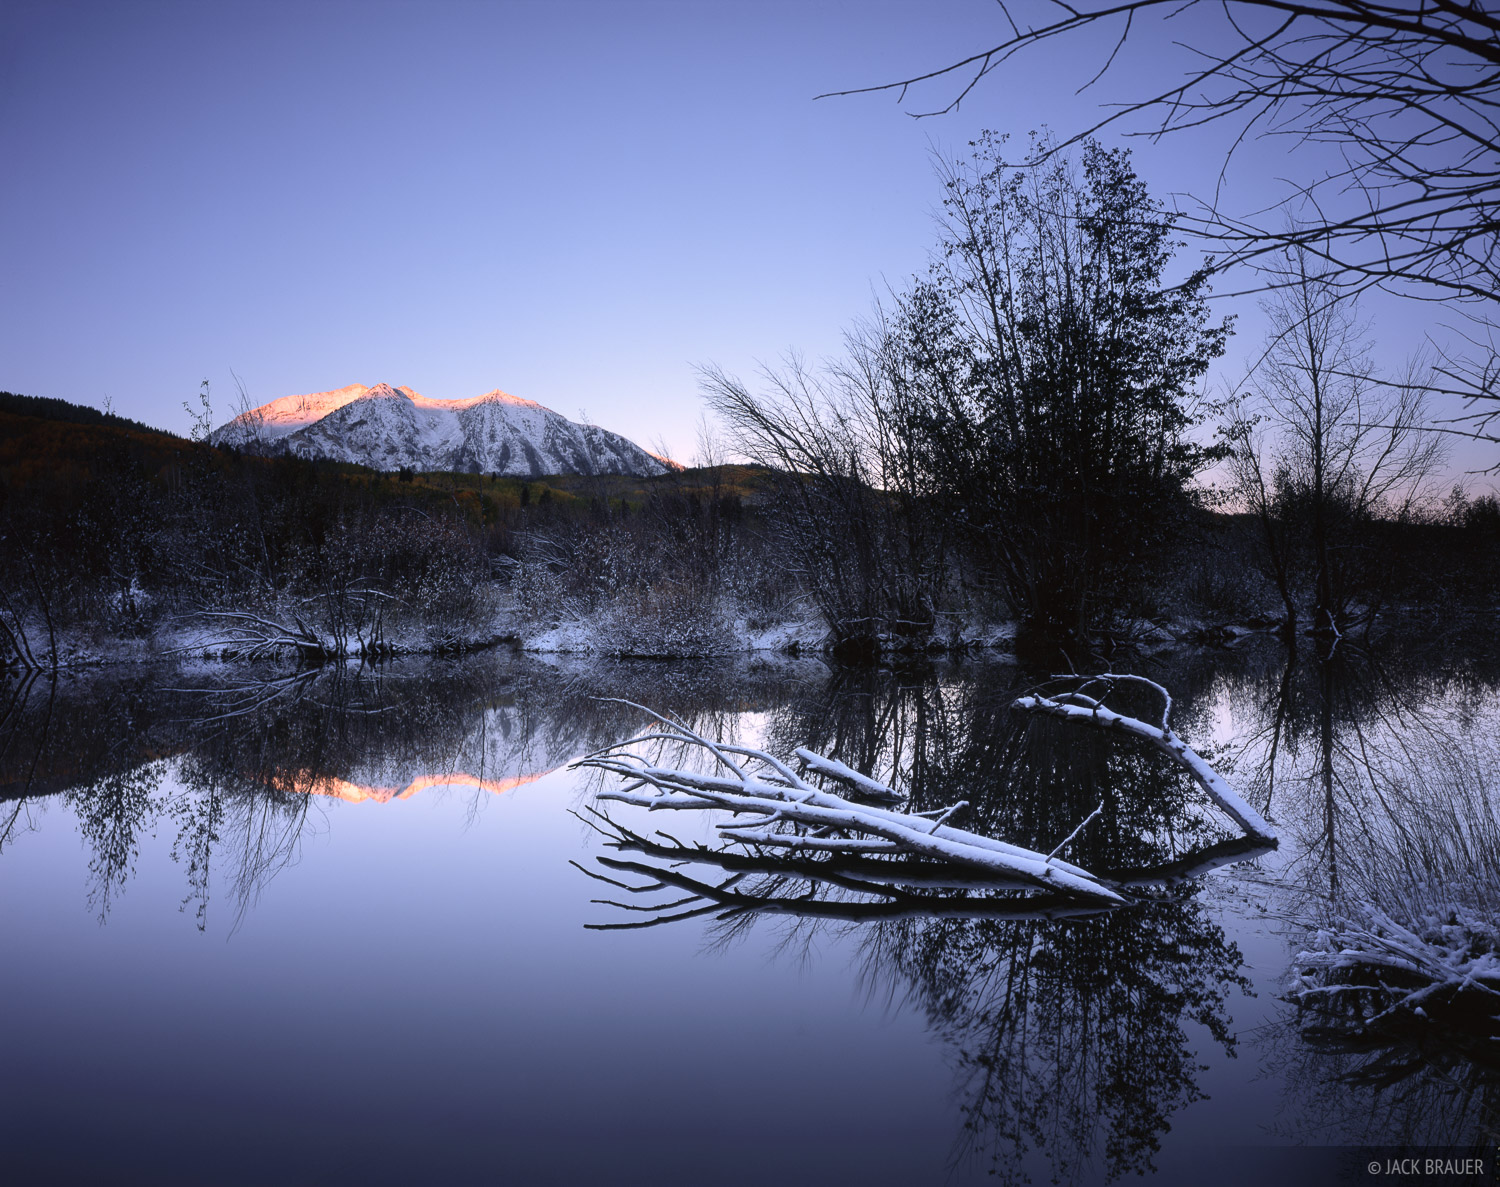 Sunrise light on East Beckwith Mountain, as seen from a beaver pond near Kebler Pass on a snowy September morning.